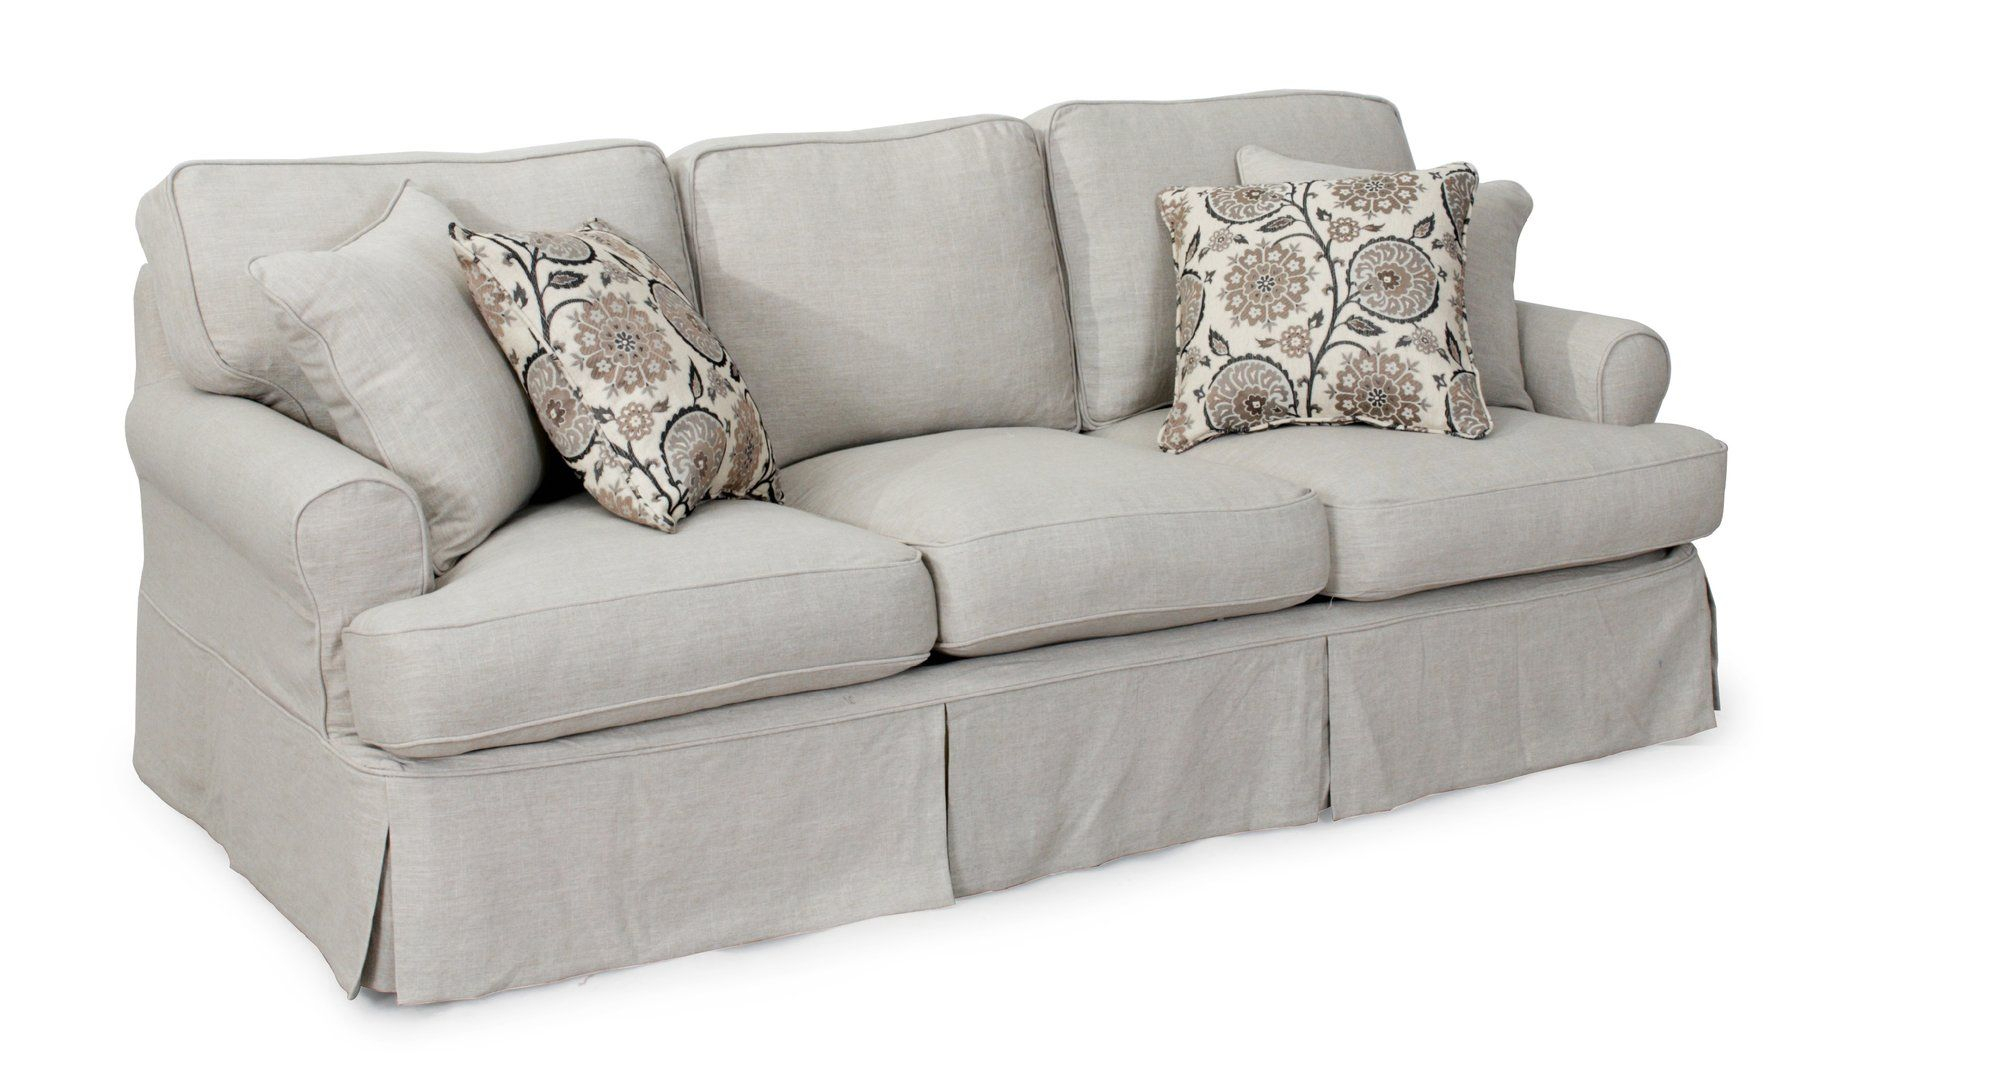 Callie Sofa T Cushion Slipcover Set | Products | Pinterest | Sofa With Callie Sofa Chairs (Photo 13 of 20)